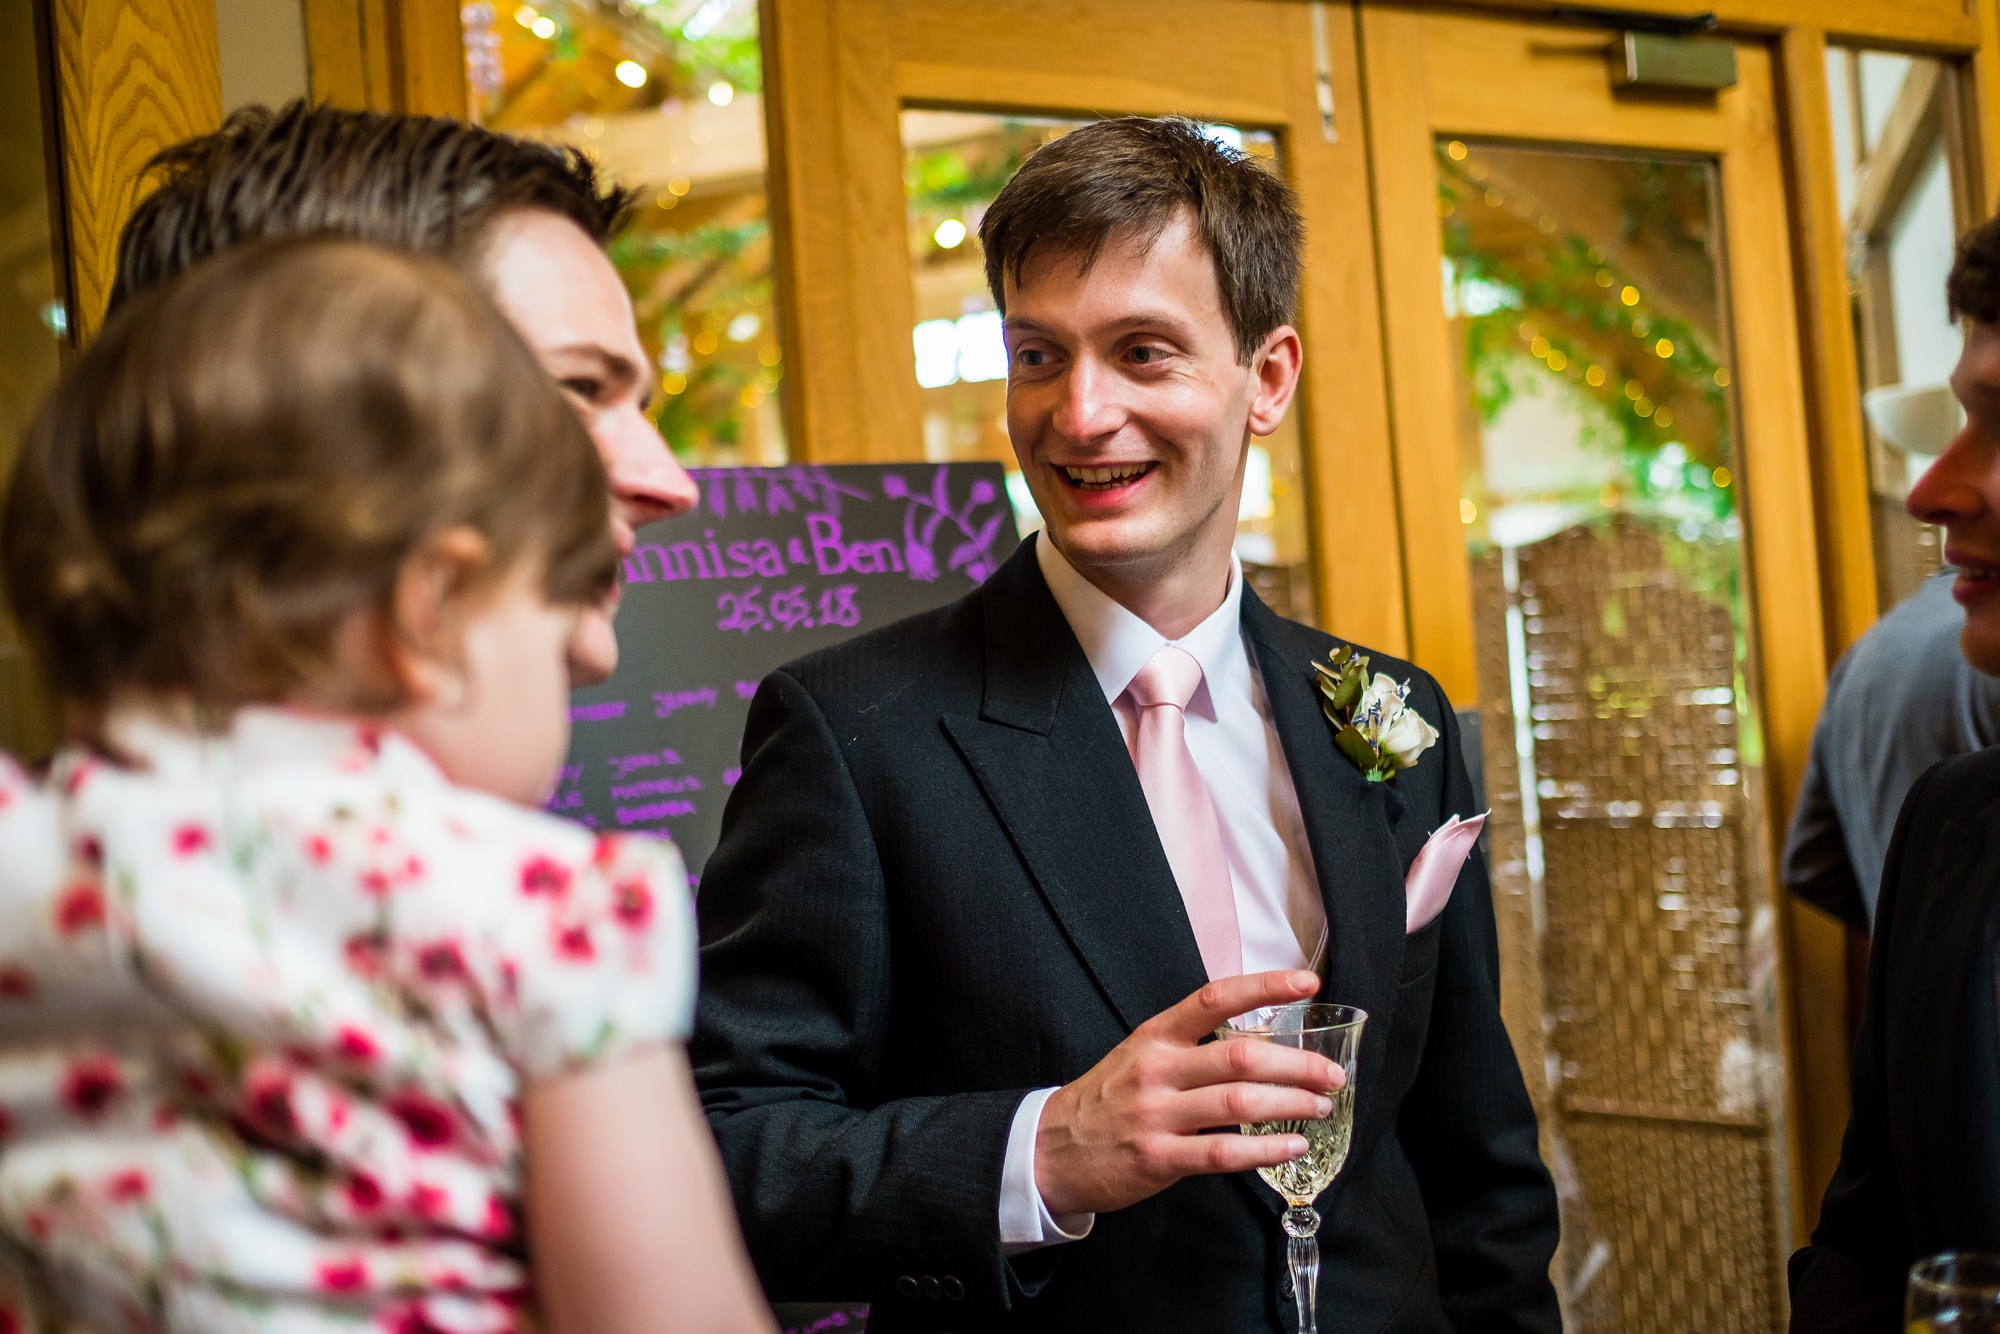 groom chatting with guests